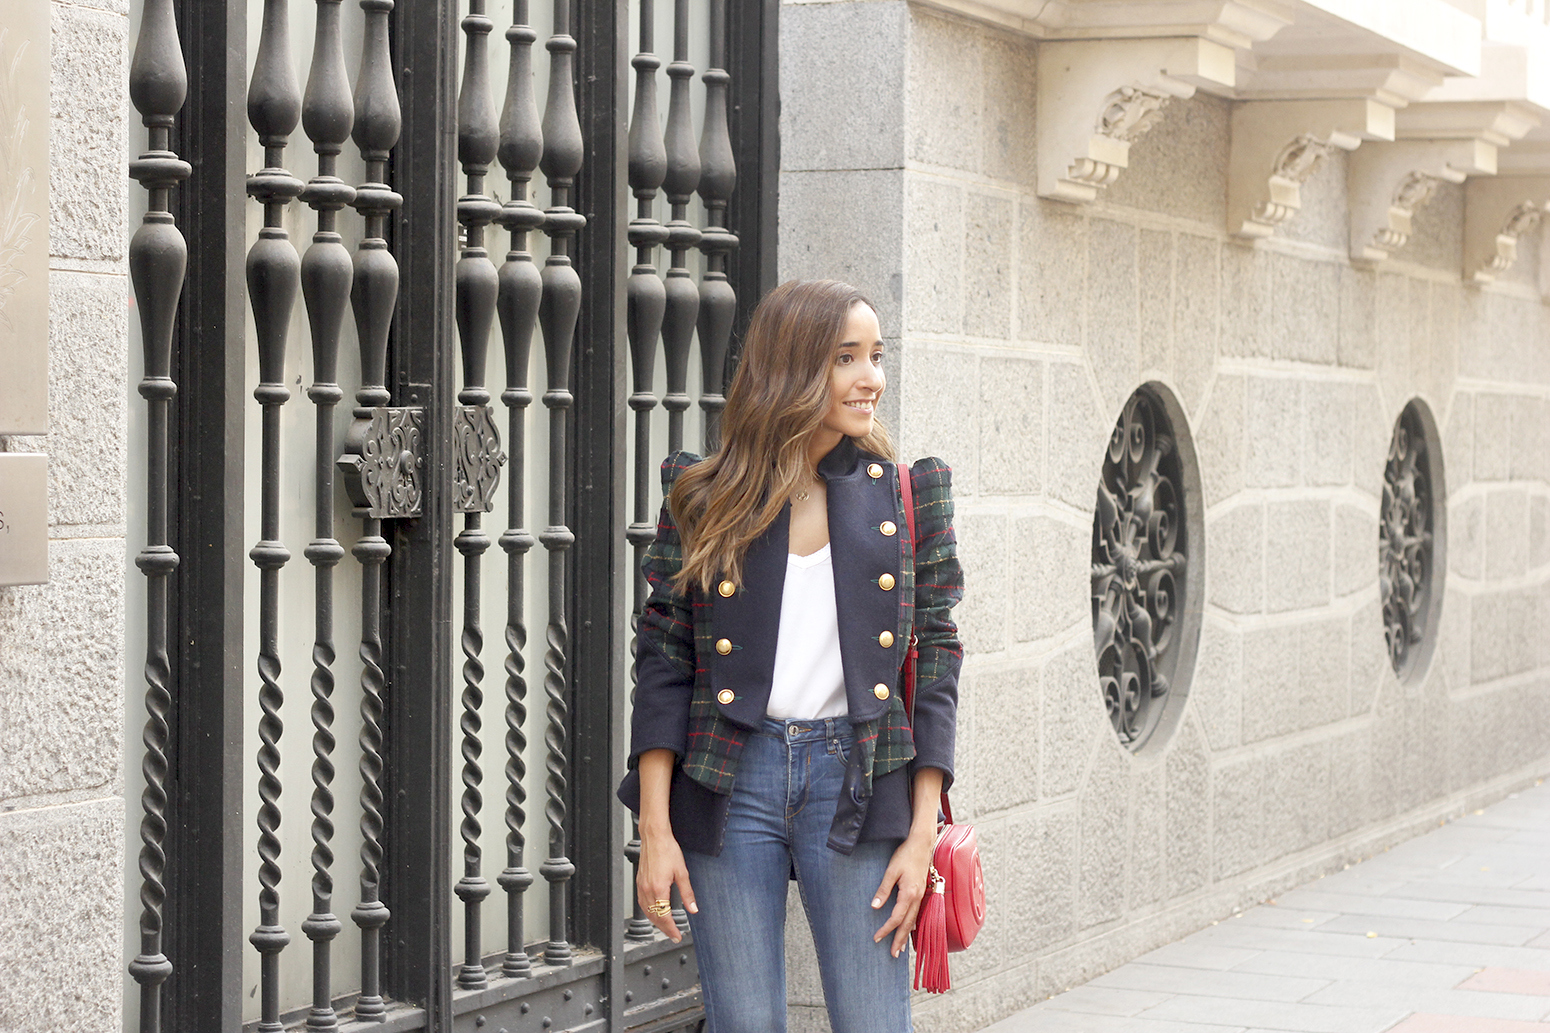 CHECKED BLAZER highly preppy gucci bag ripped jeans street style 2018 outfit06